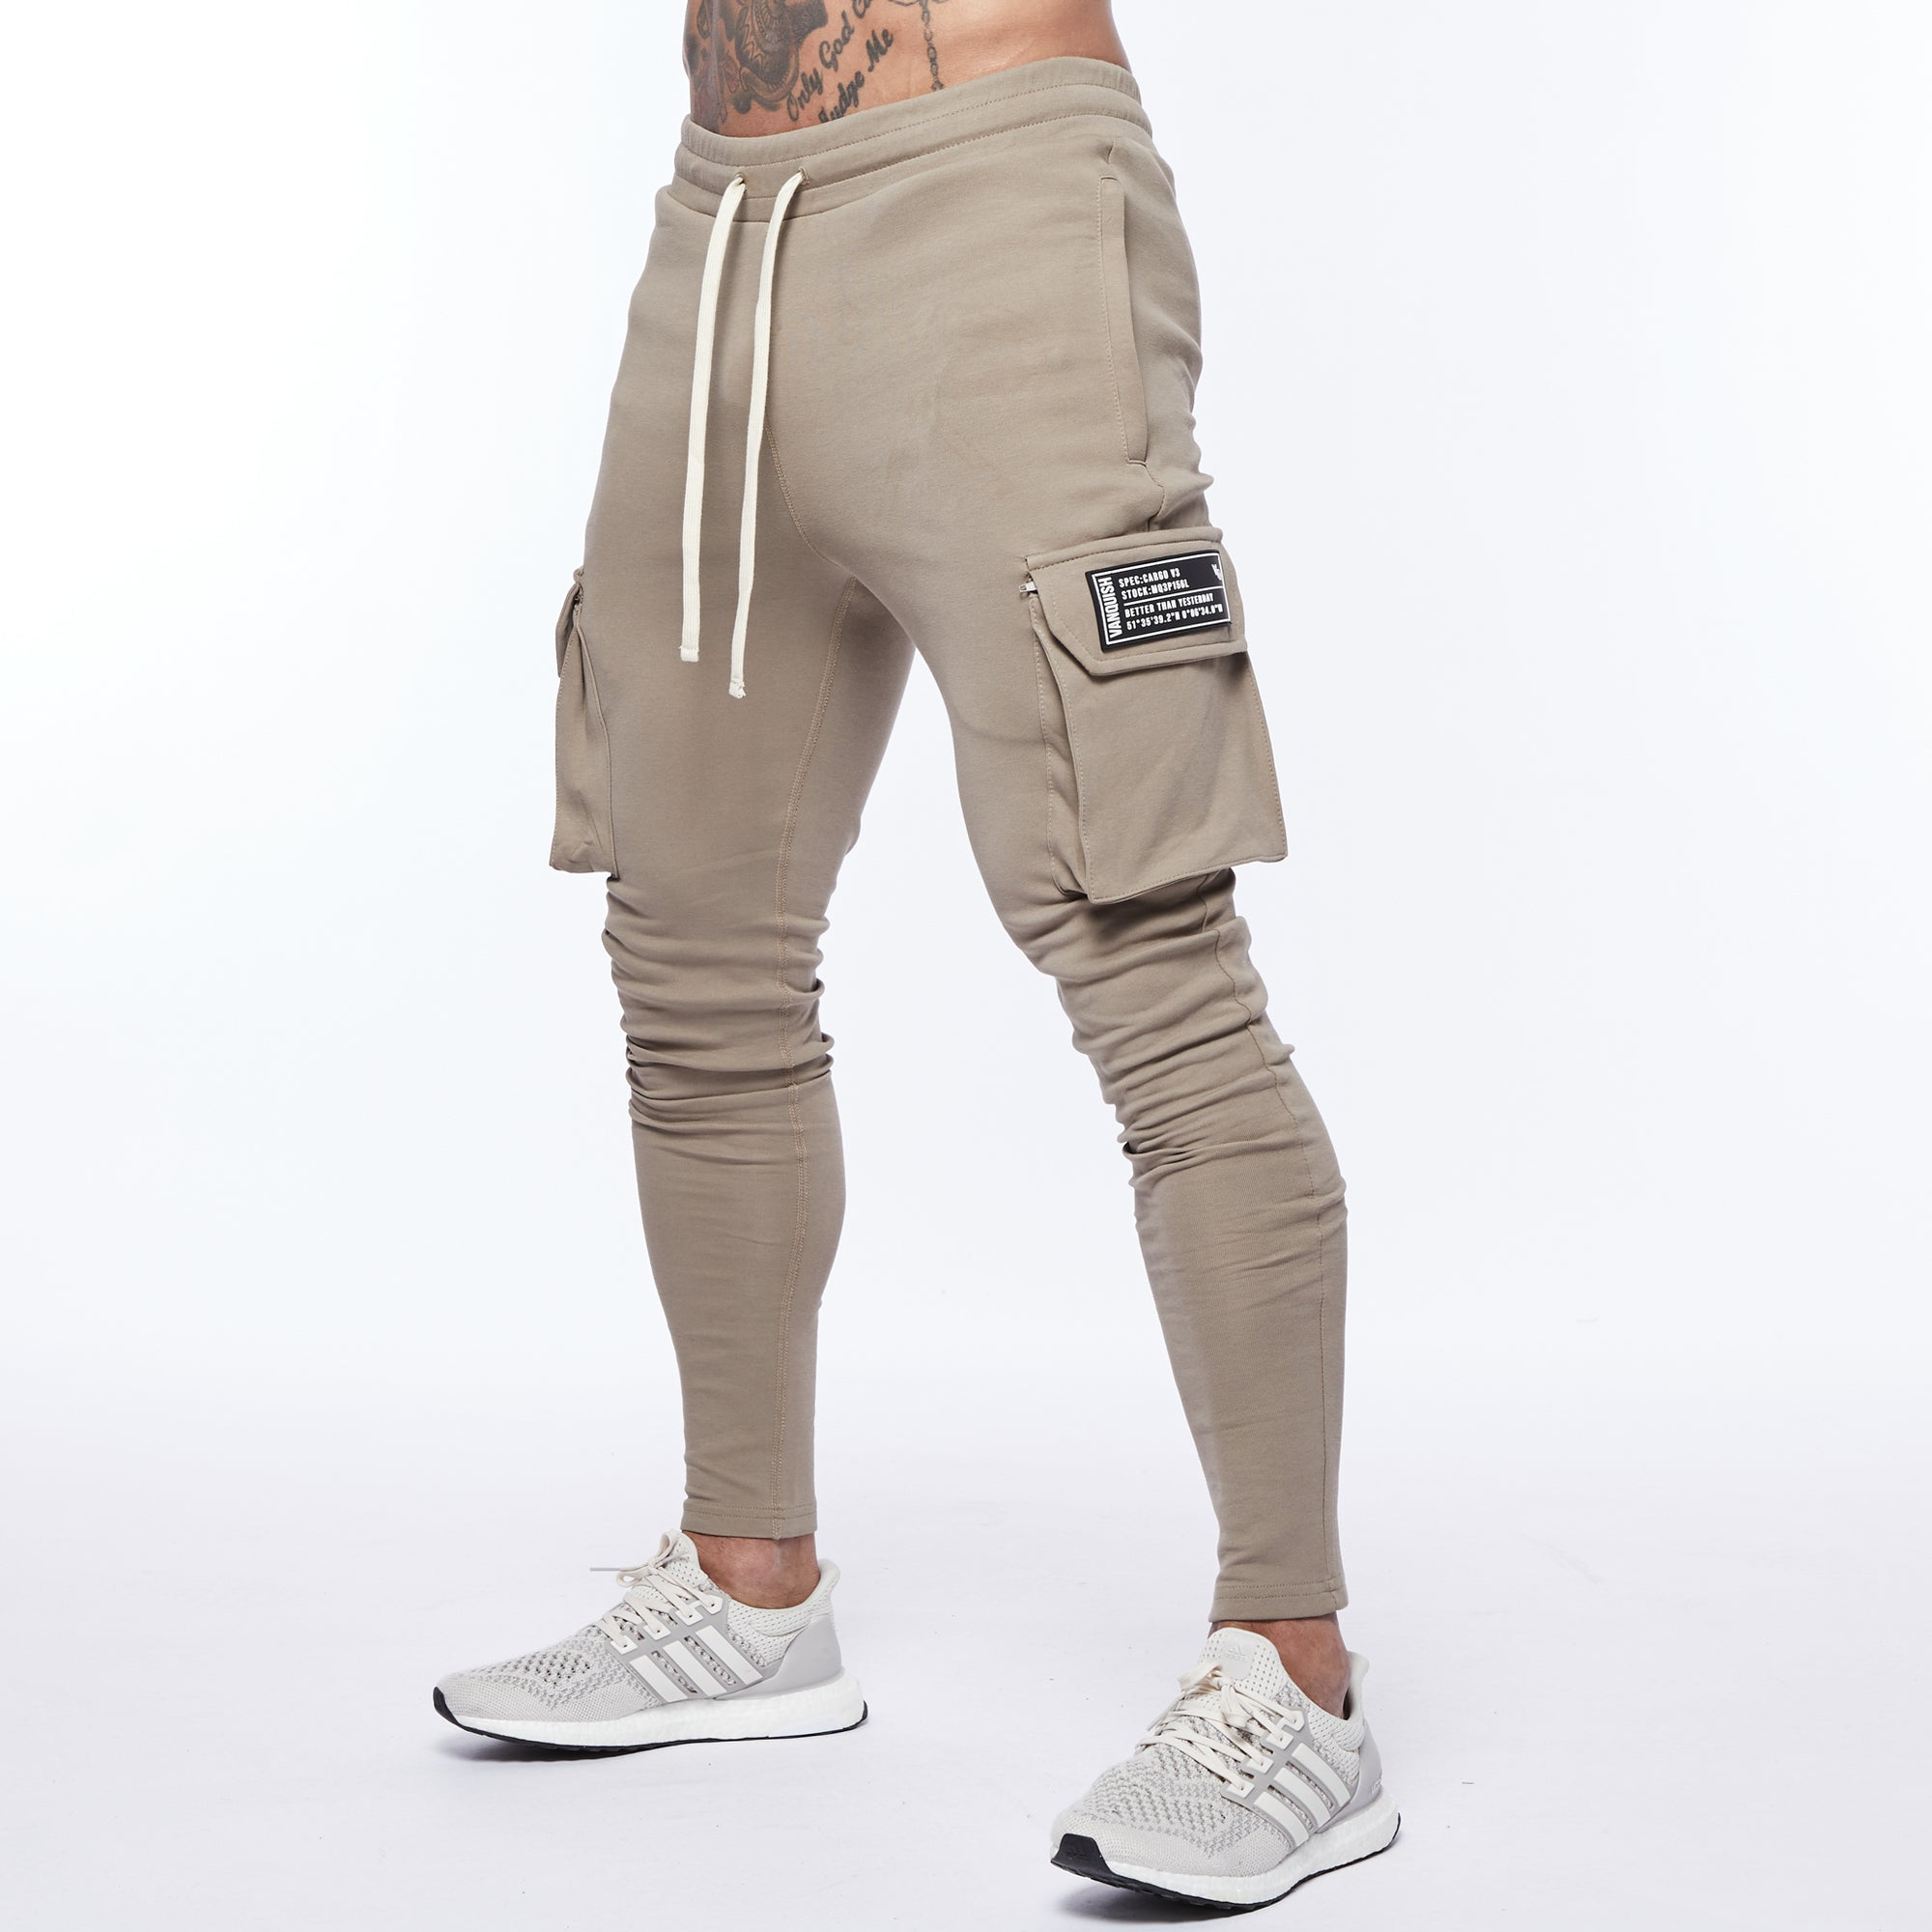 Vanquish Essential Khaki Tapered Cargo Sweatpants